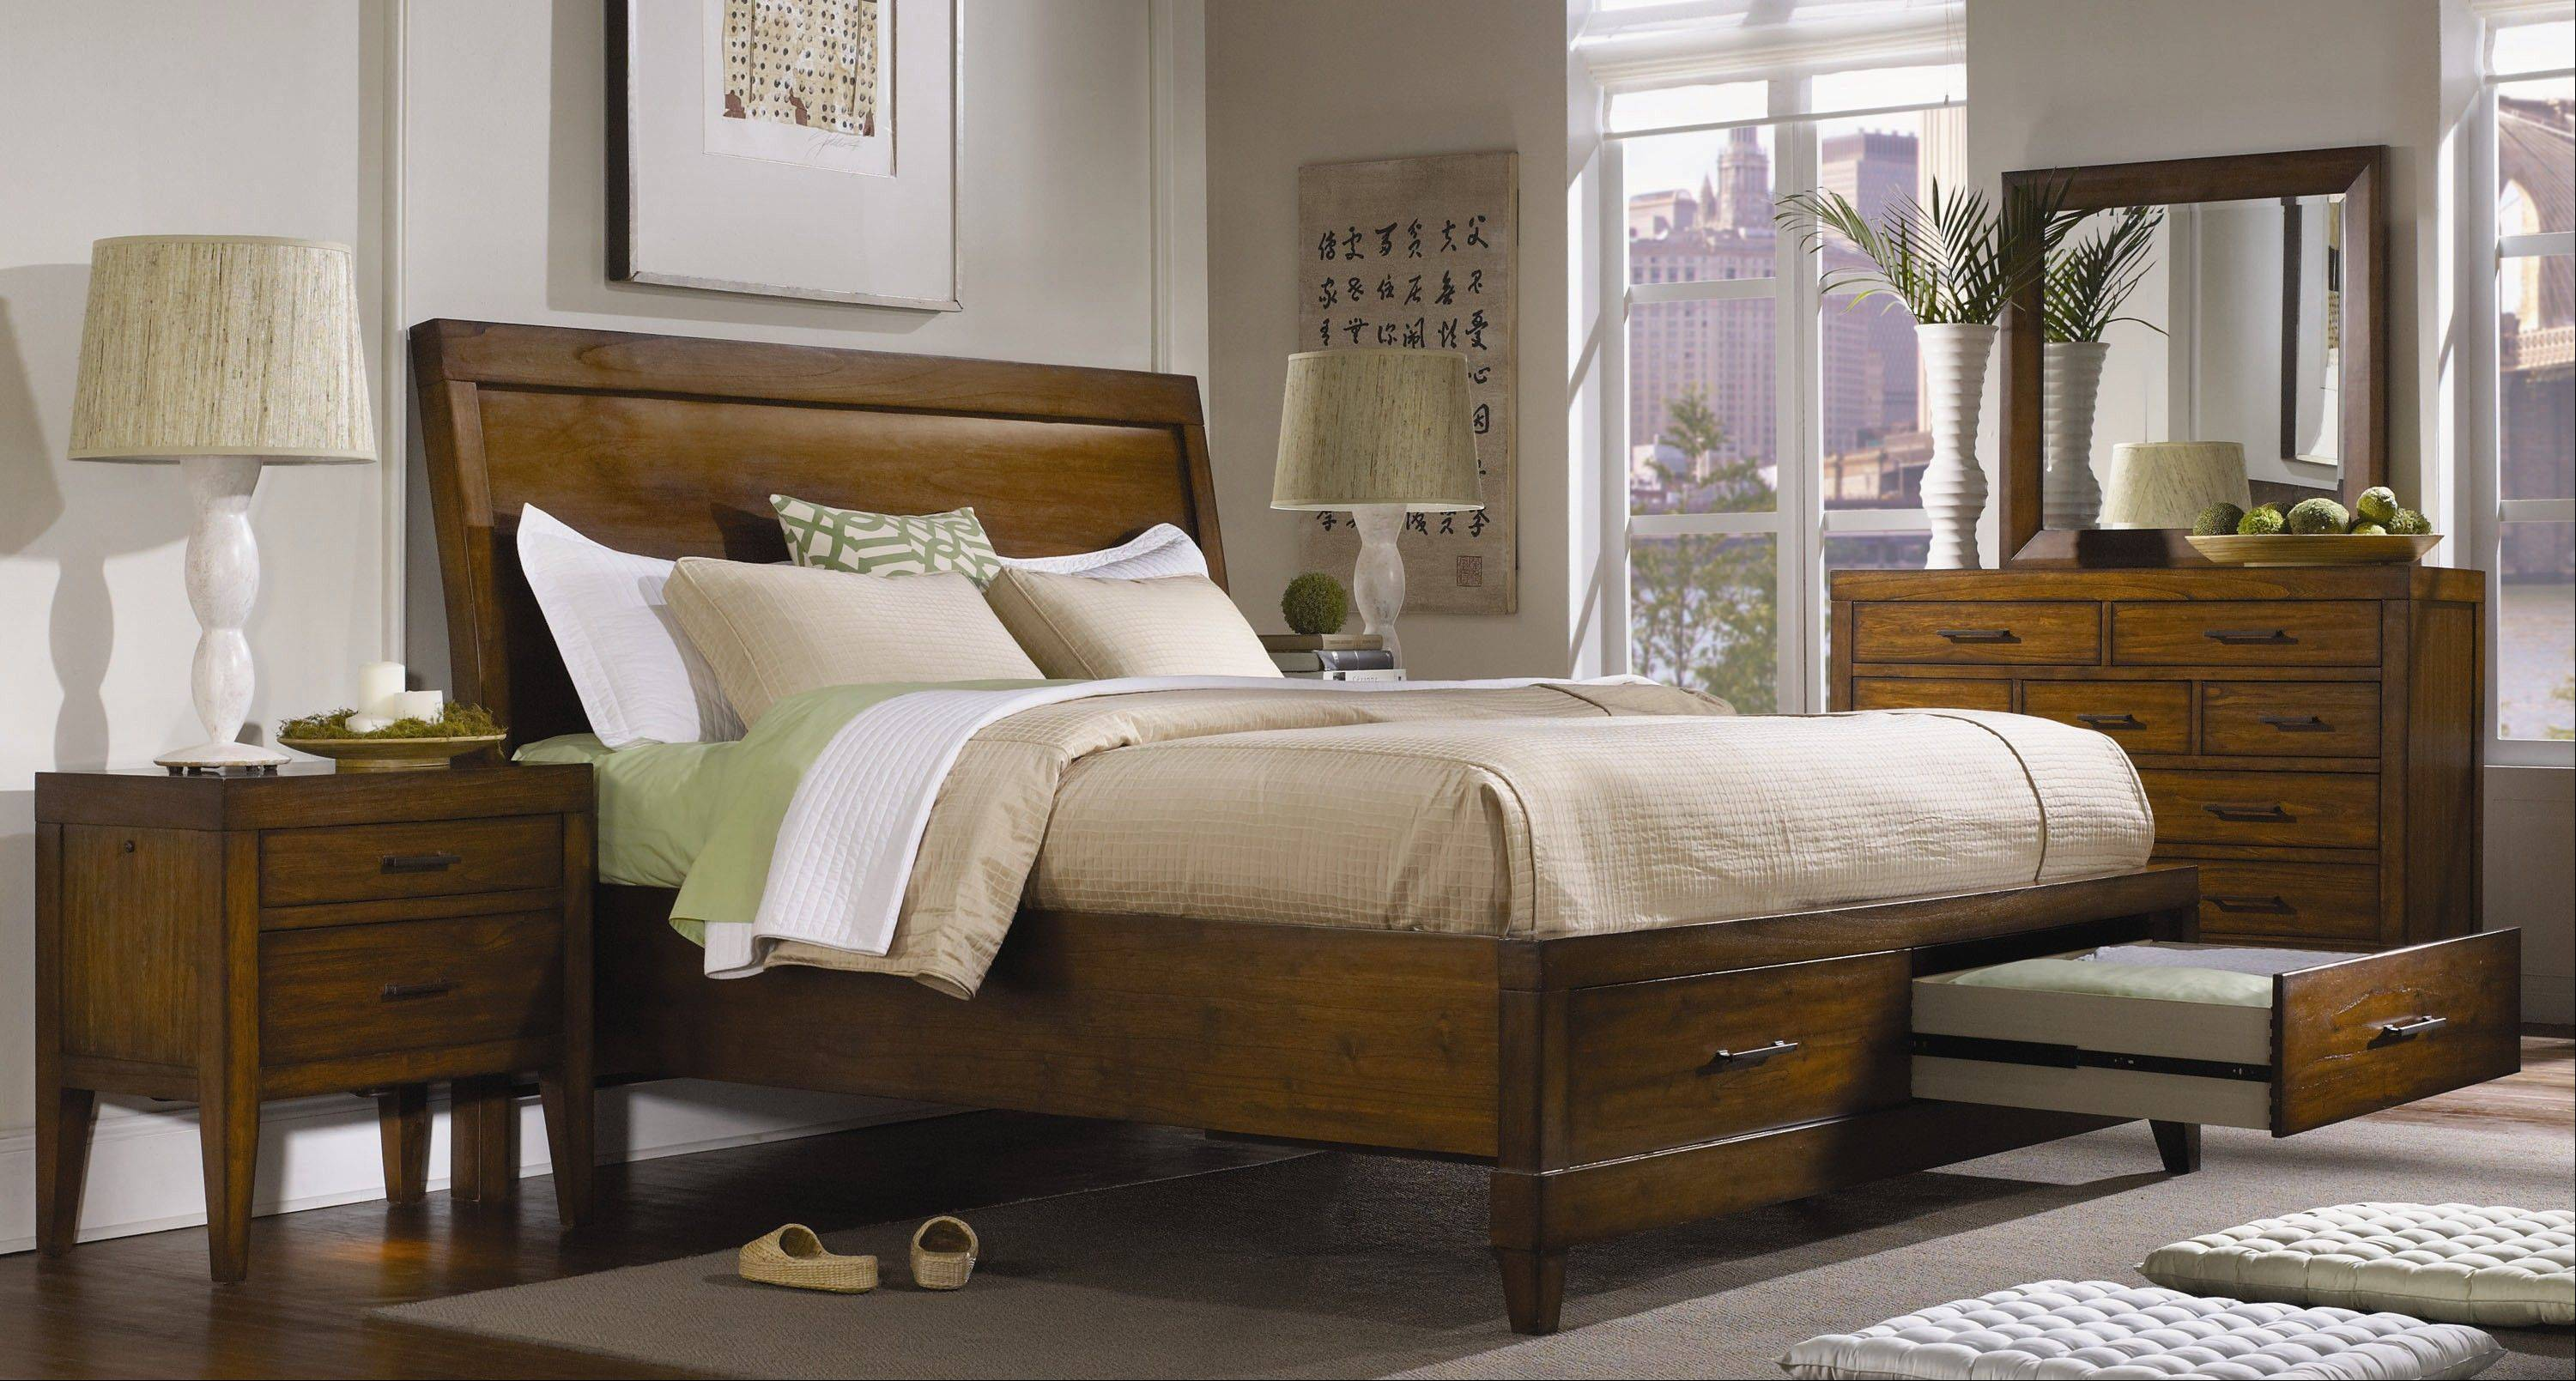 As homeowners struggle with the need for more storage space, king- and queen-size beds with storage drawers have become more popular.